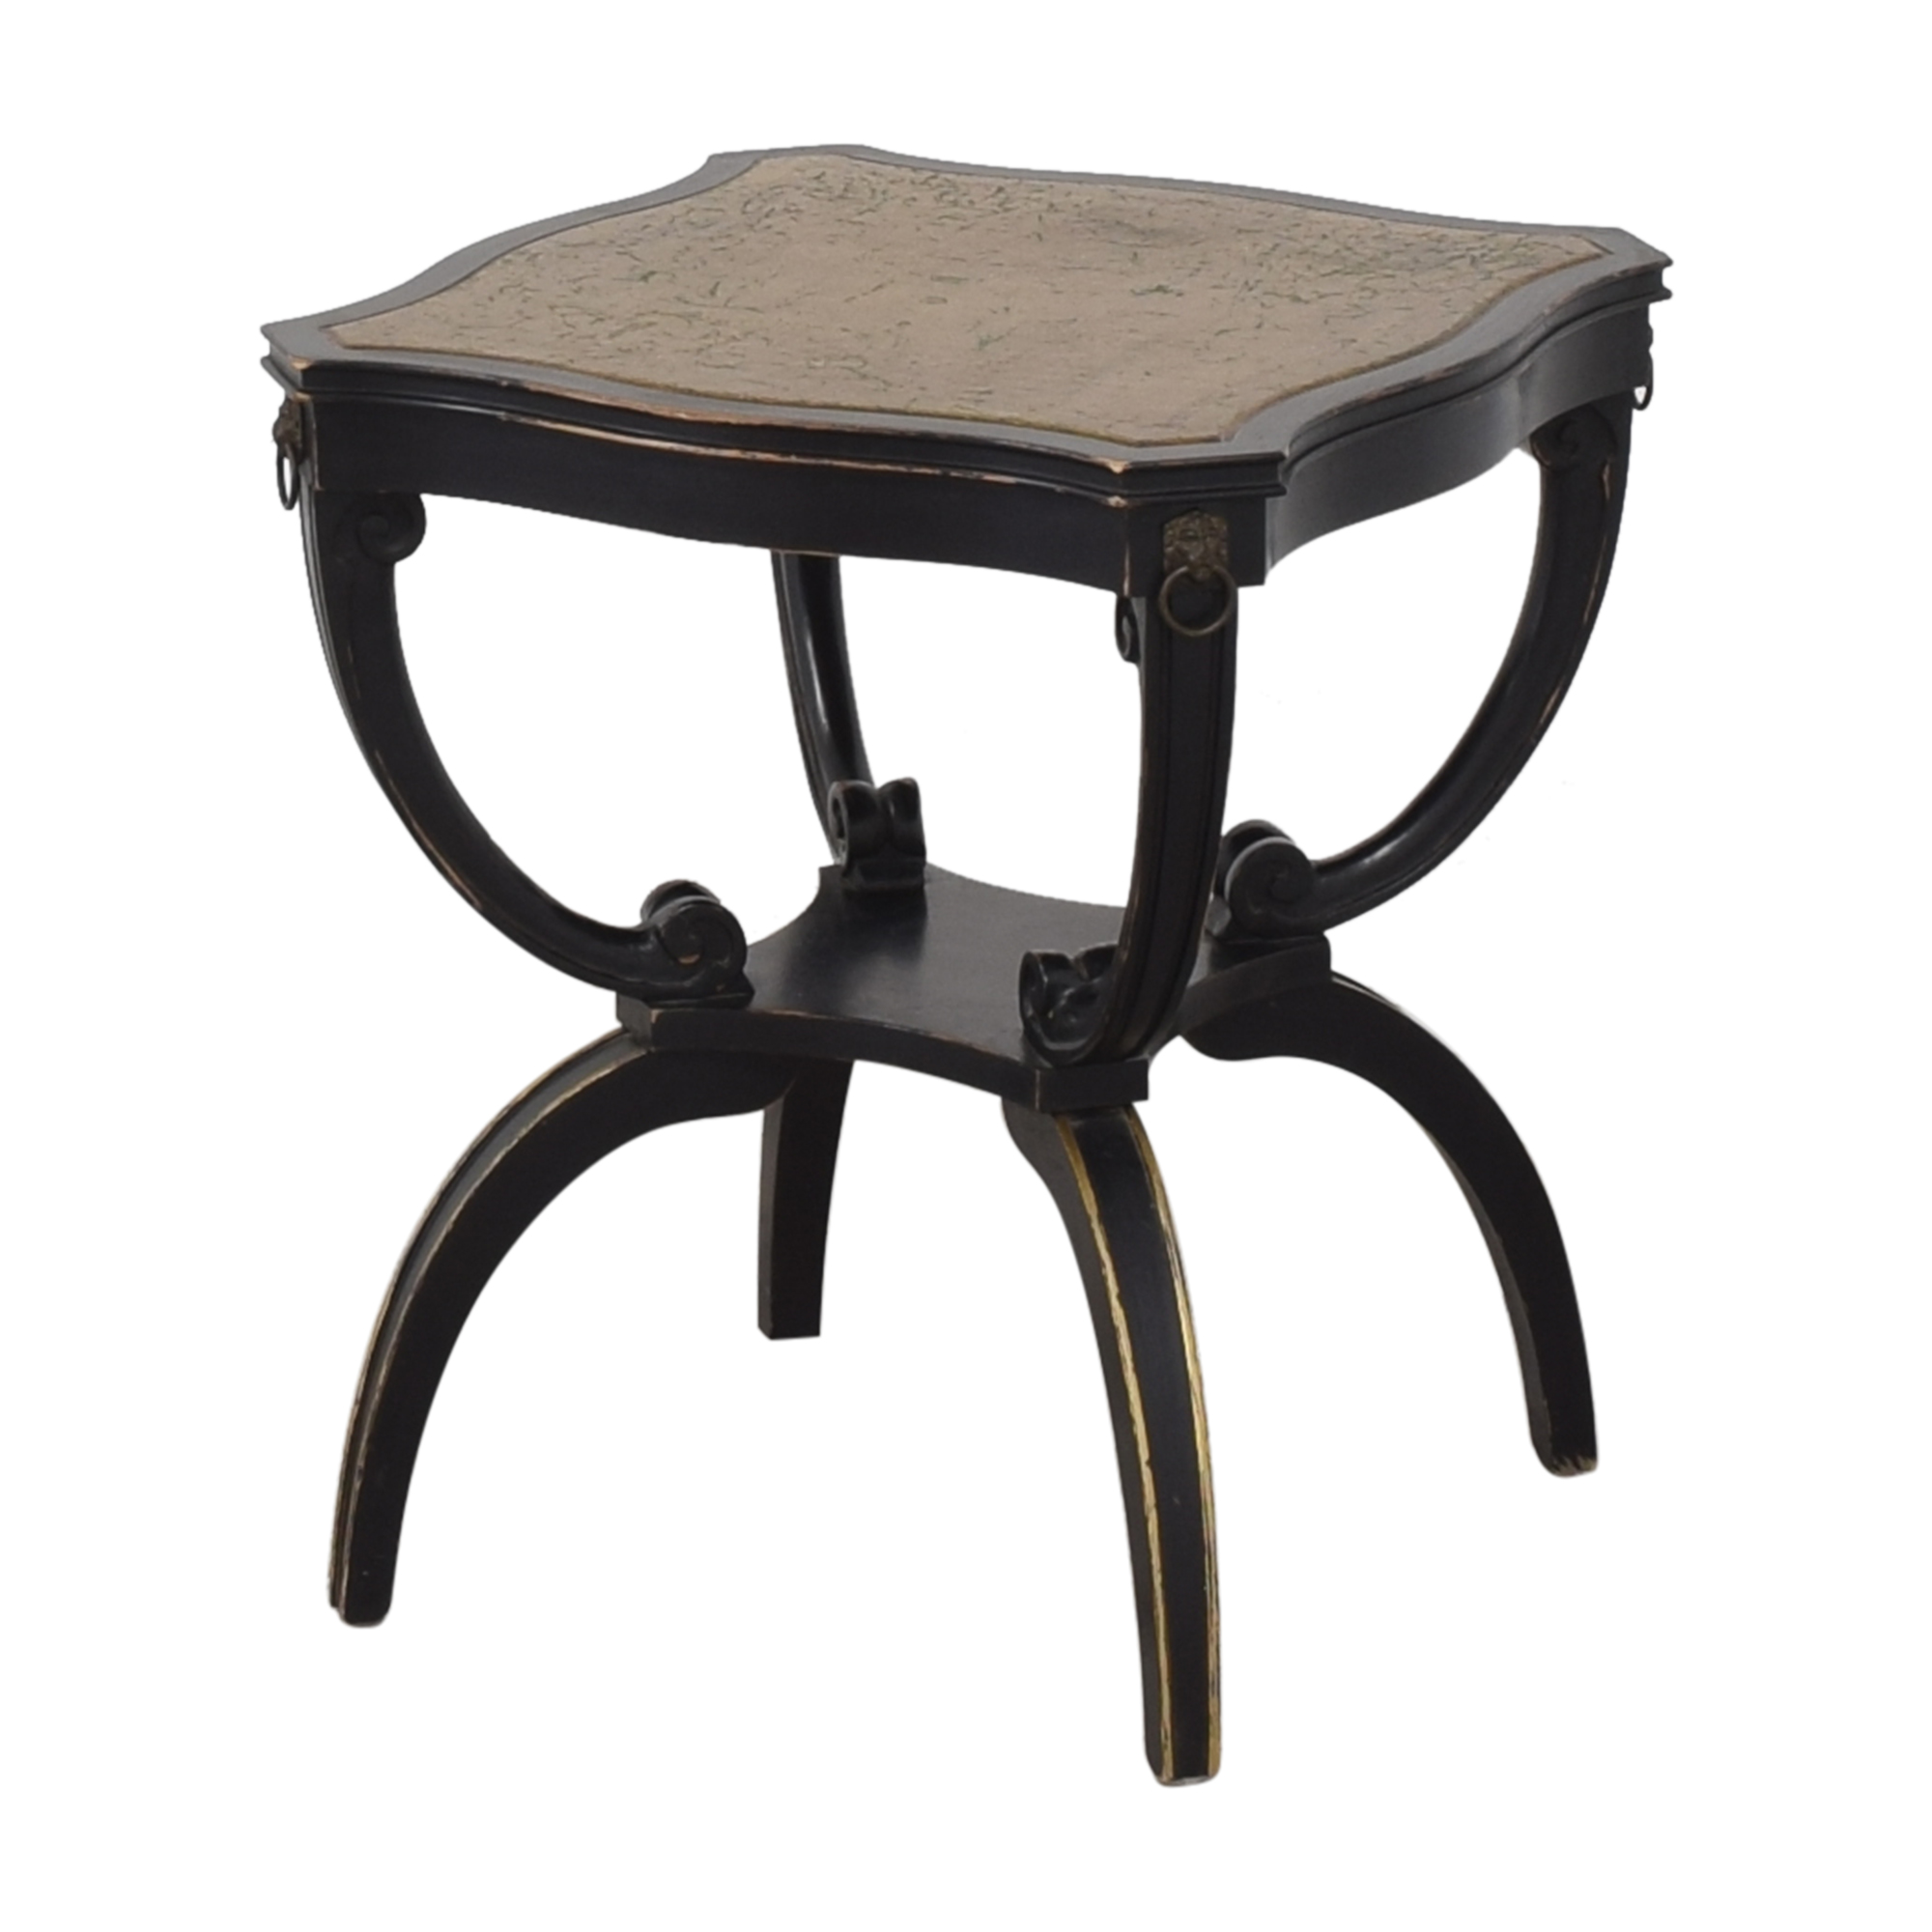 Adams Always Adams Always Decorative End Table Tables